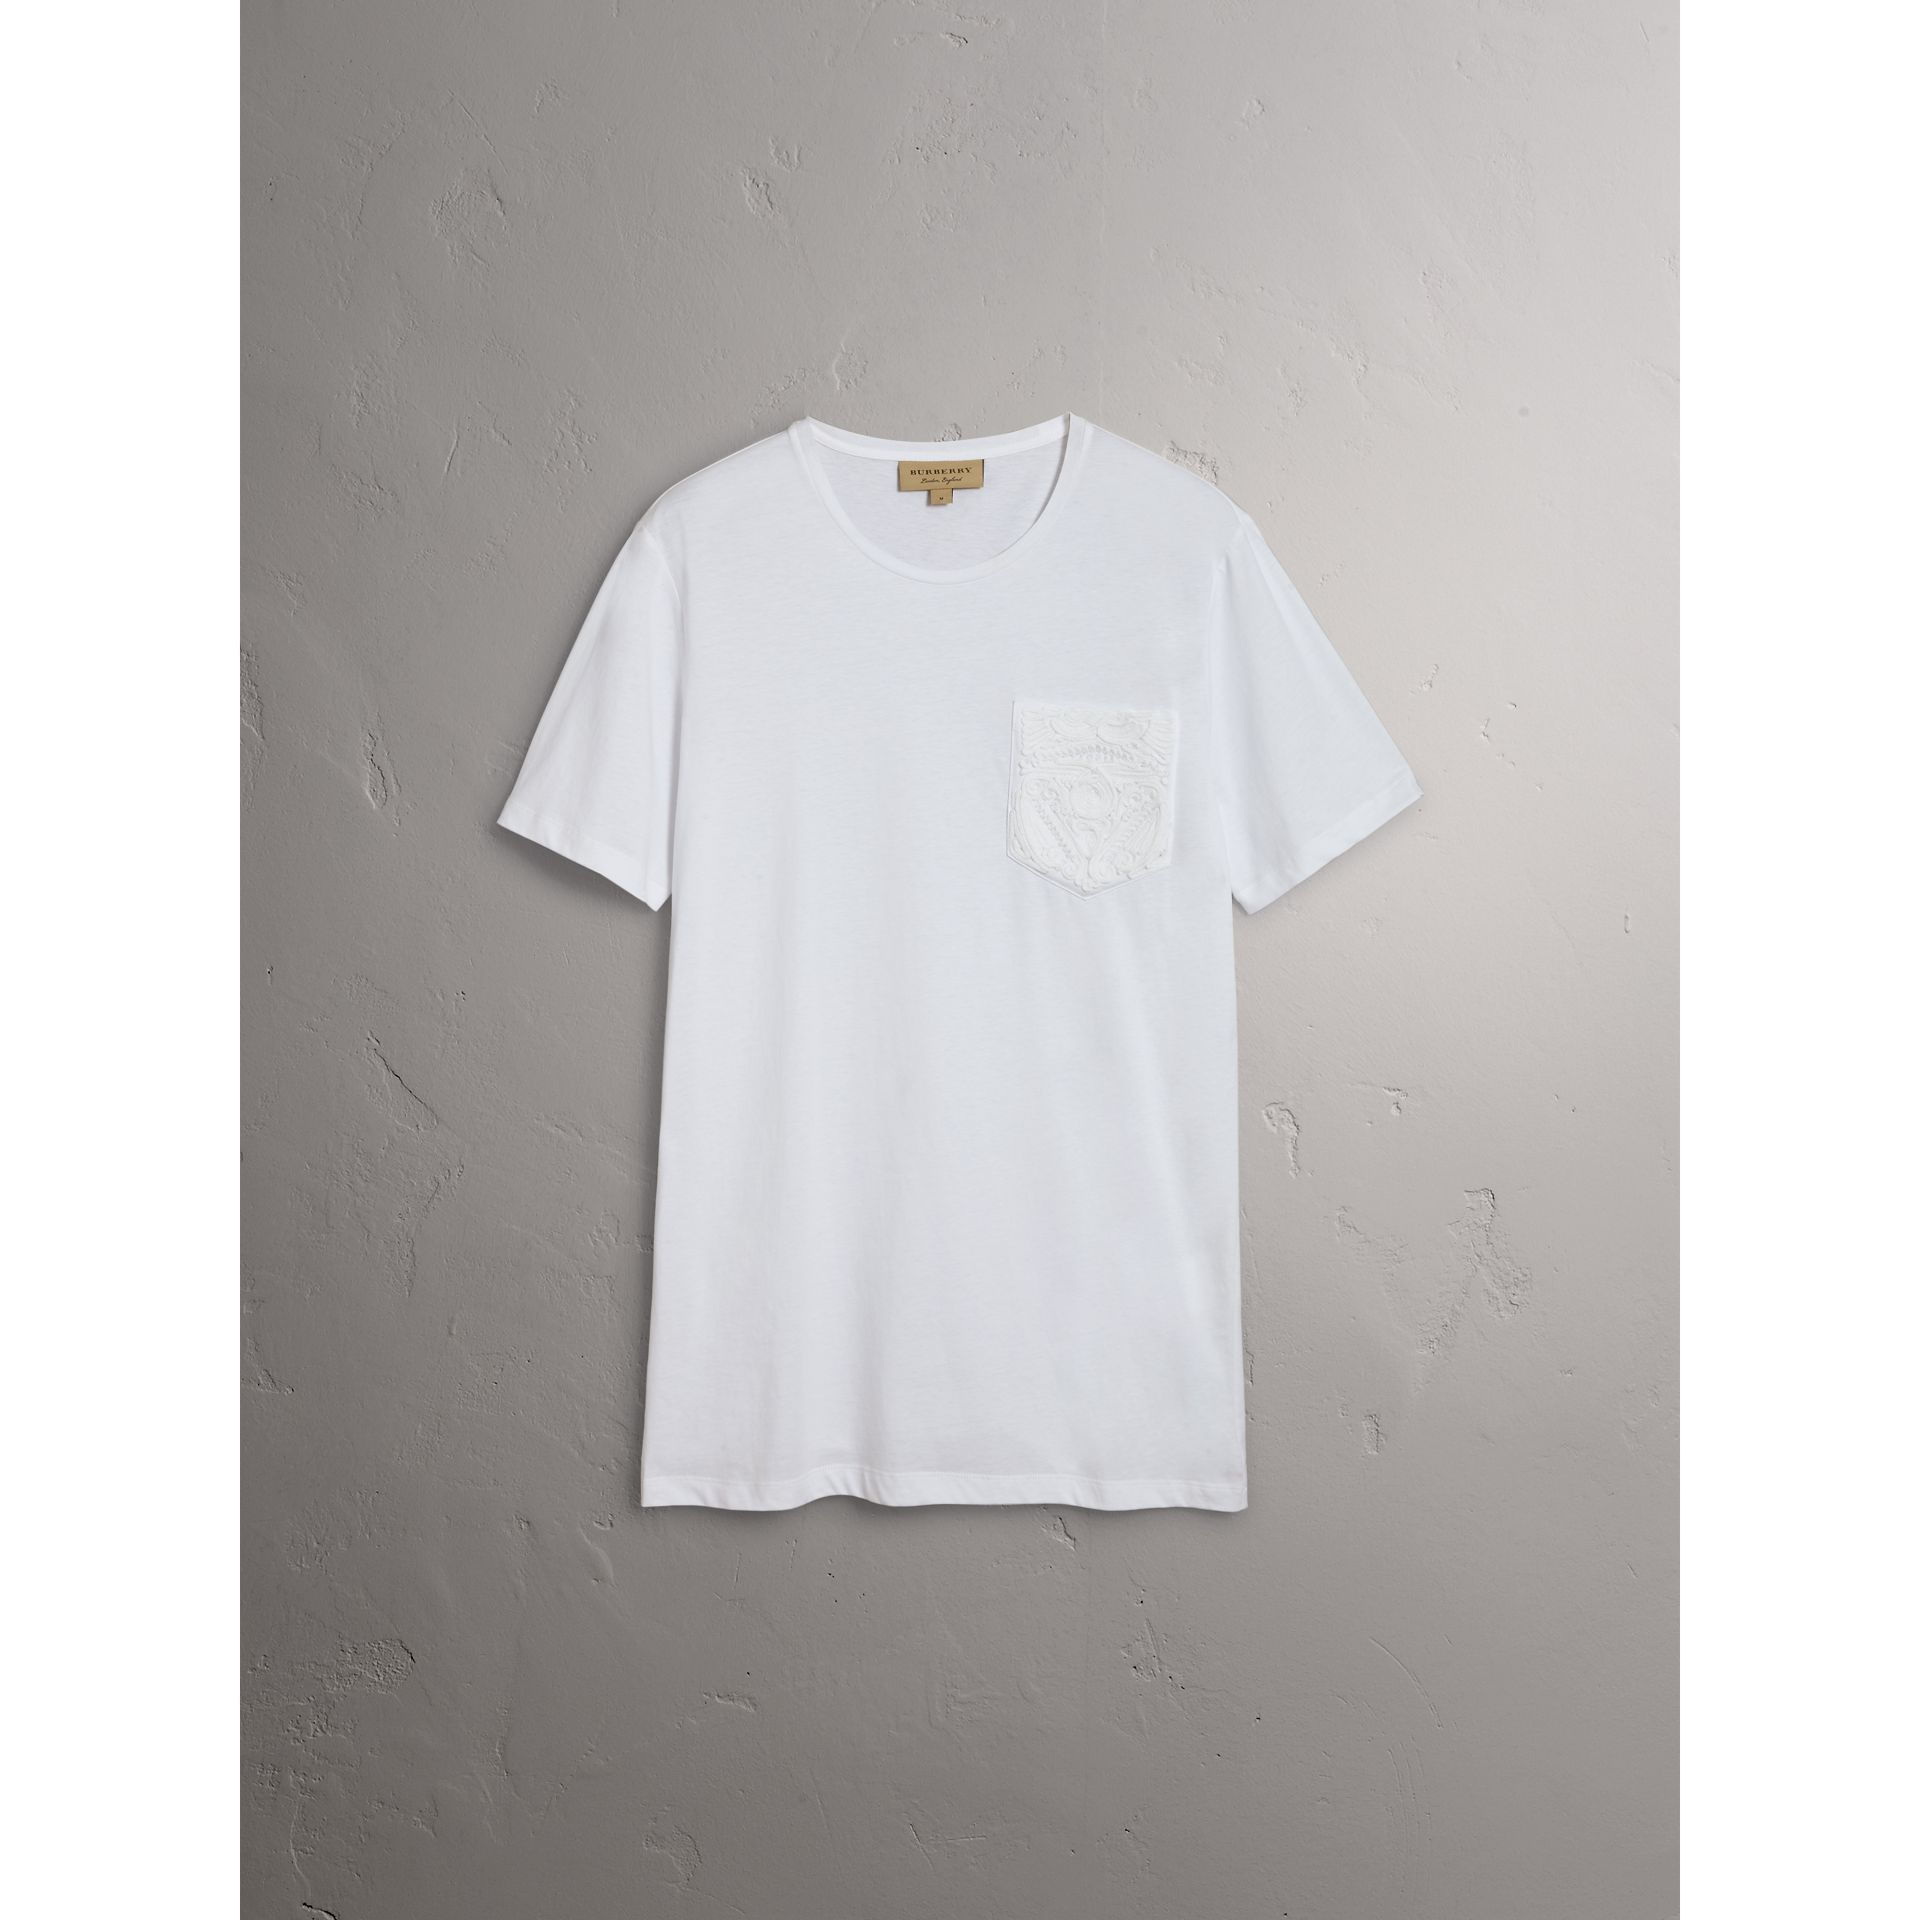 Burberry White Rope Embroidered Pocket Cotton T-shirt